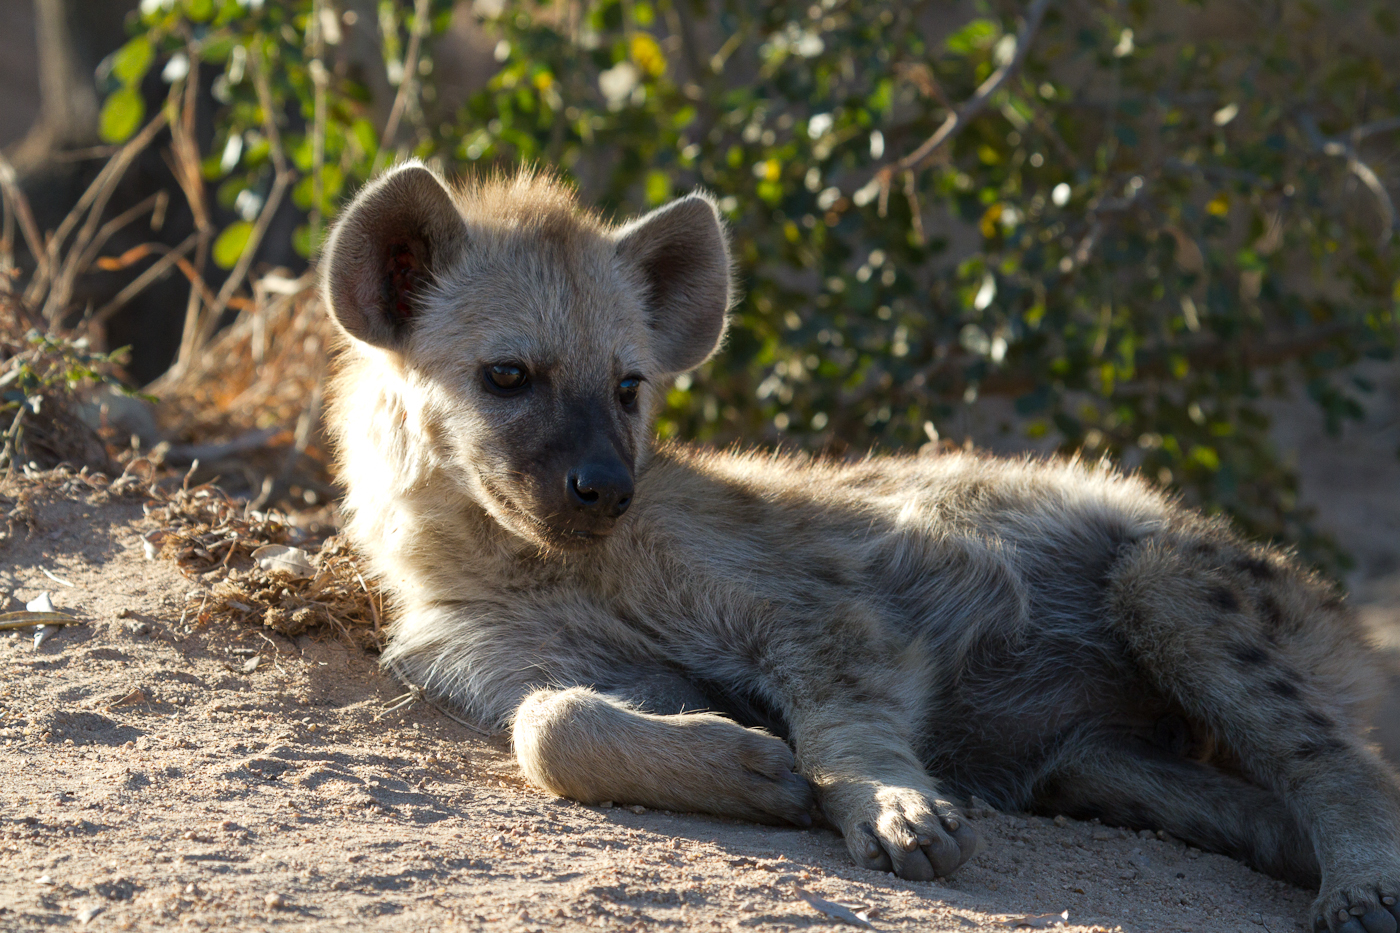 A young Hyena enjoys the evening sun.